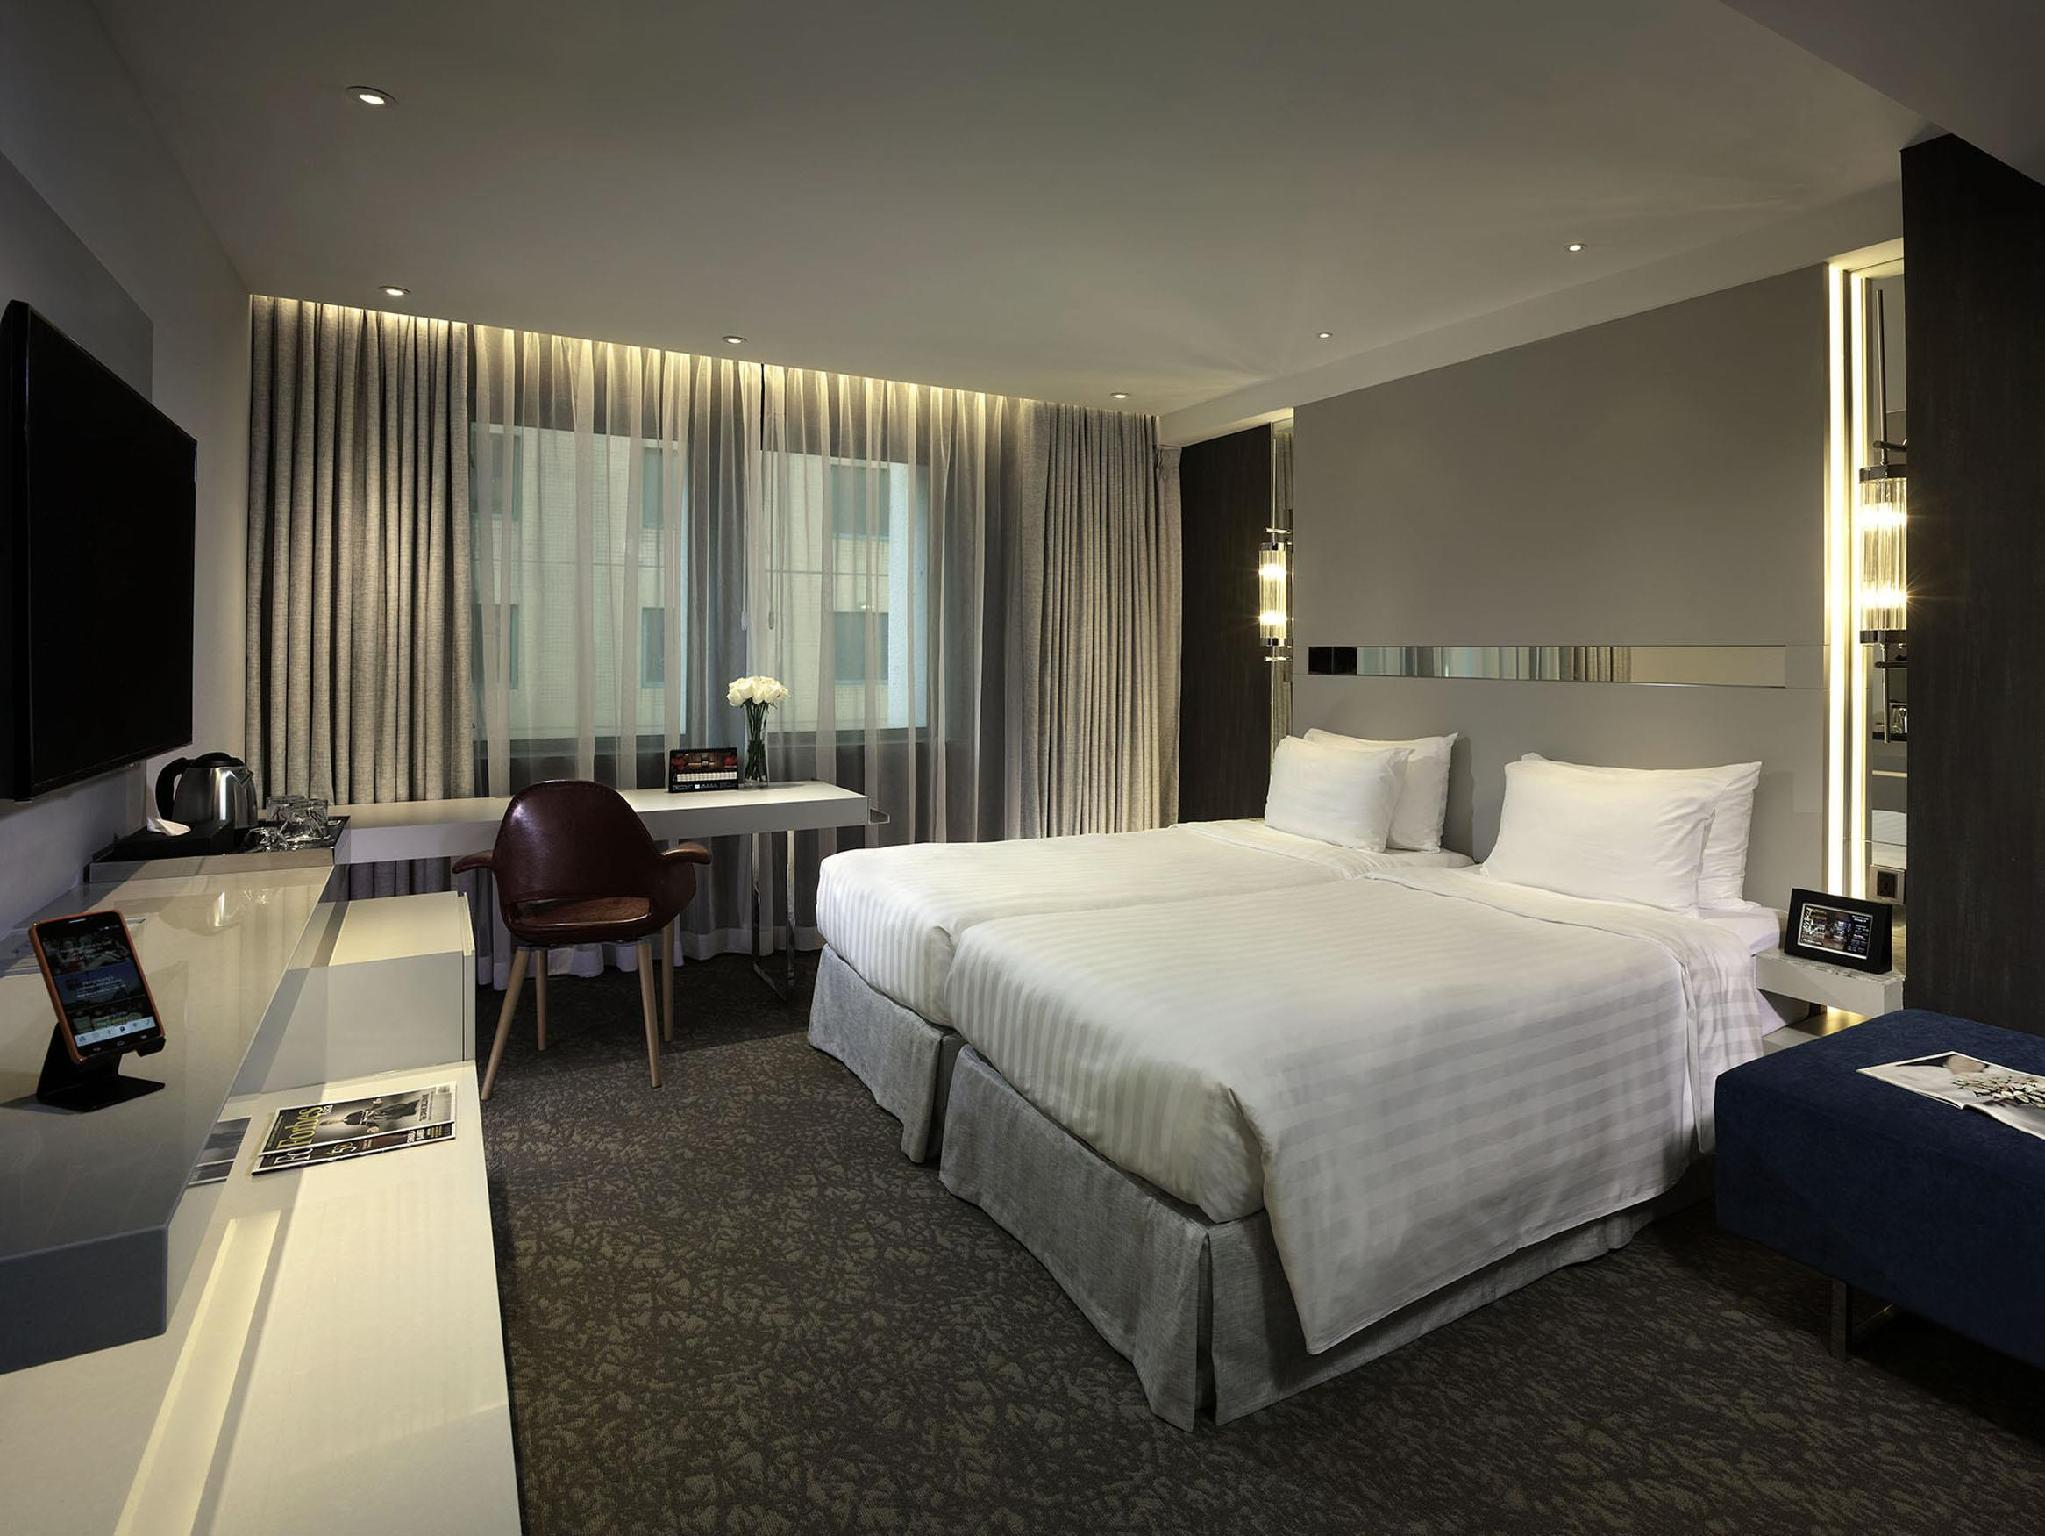 Staycation Offer - Free upgrade to Nathan Smart Plus Room with Late Check-out until 2pm